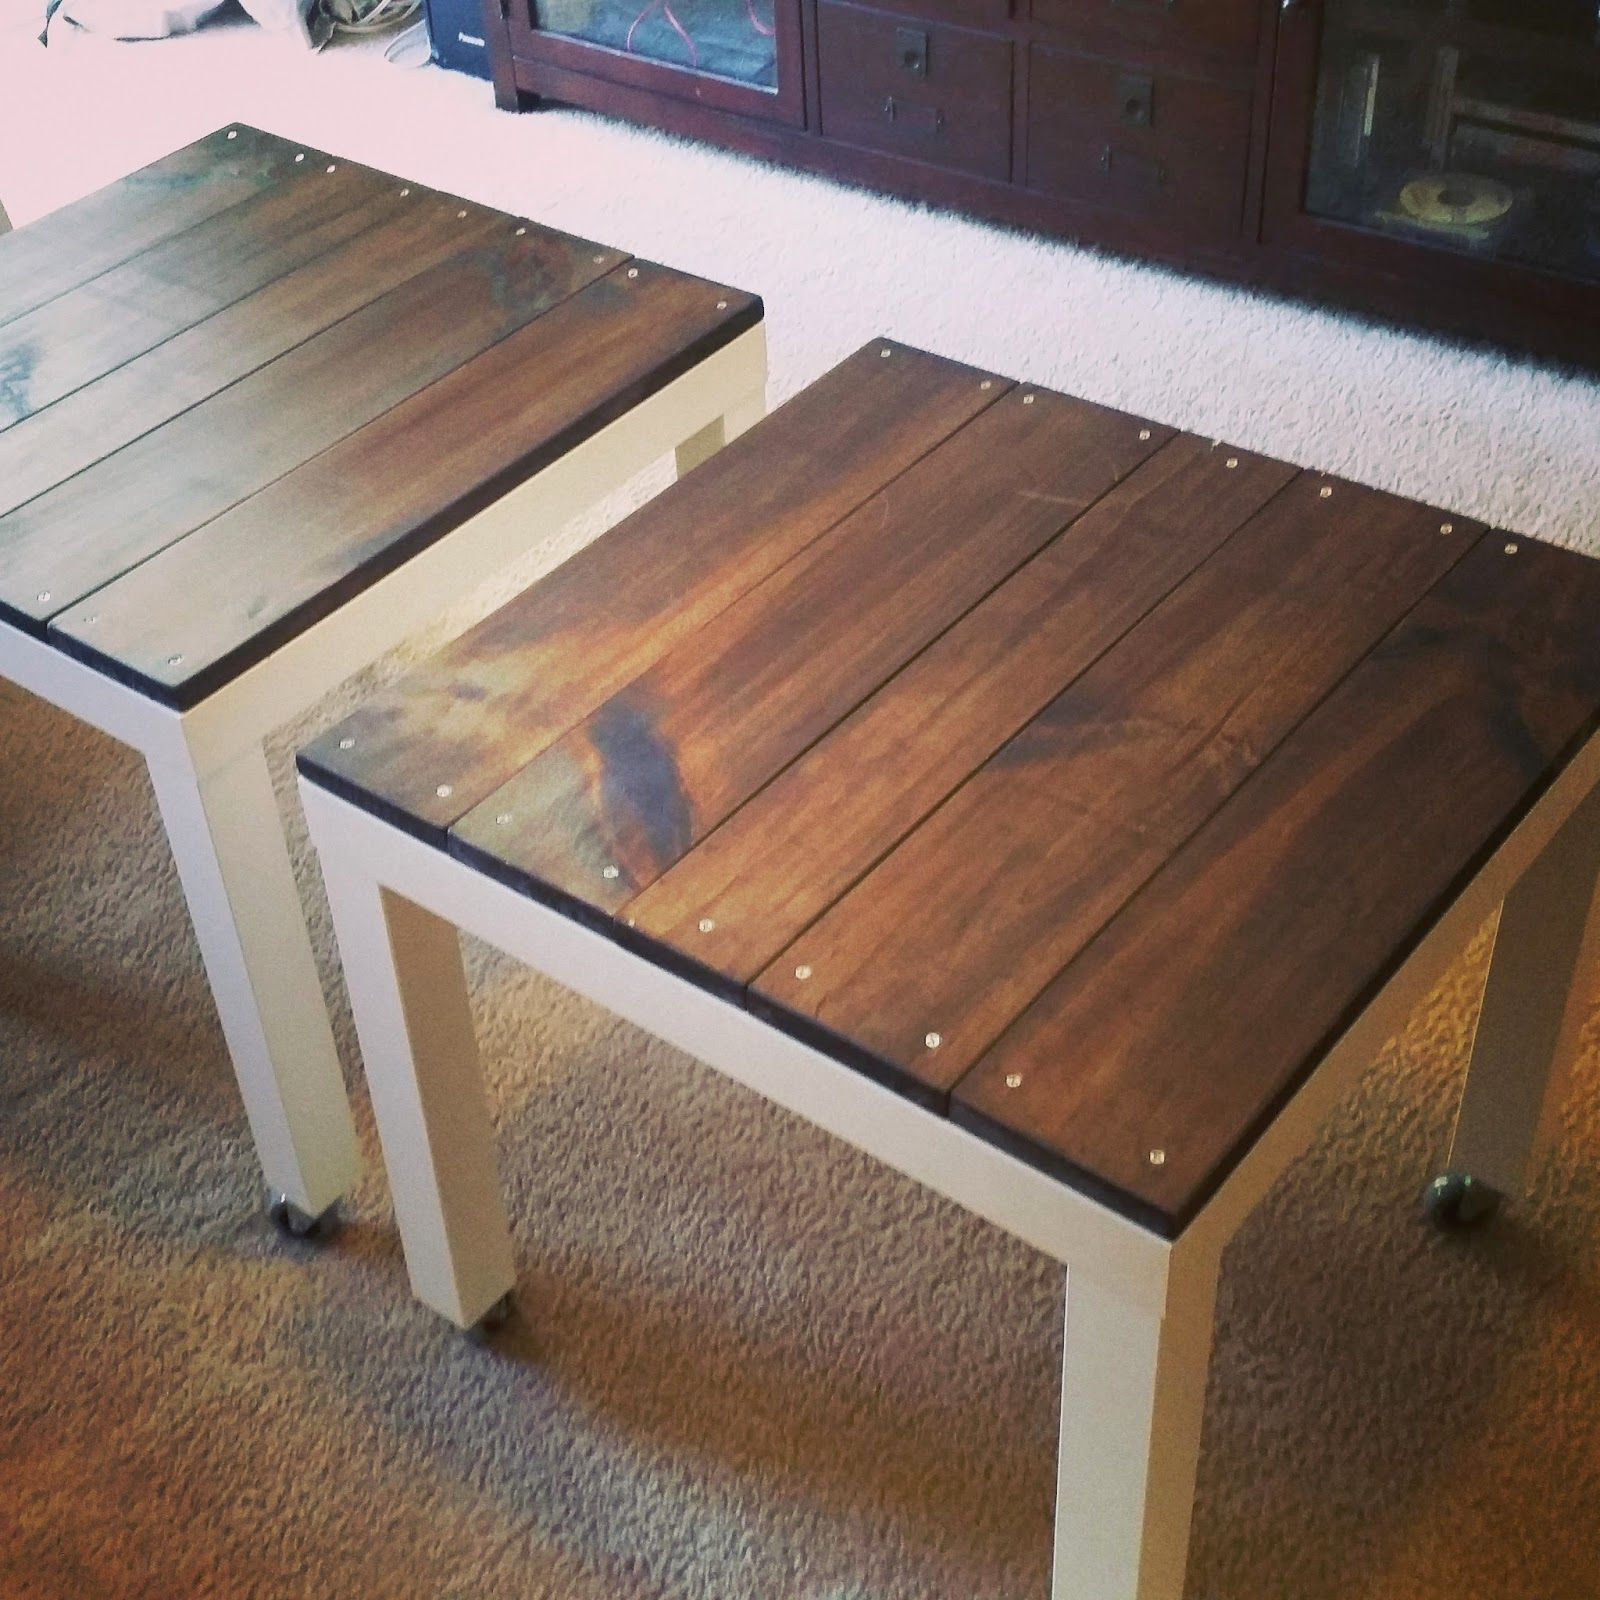 Ikea Lack Hack Add A Weathered Look To Your Inexpensive Tables With Knotted Pine And Metal Wheels